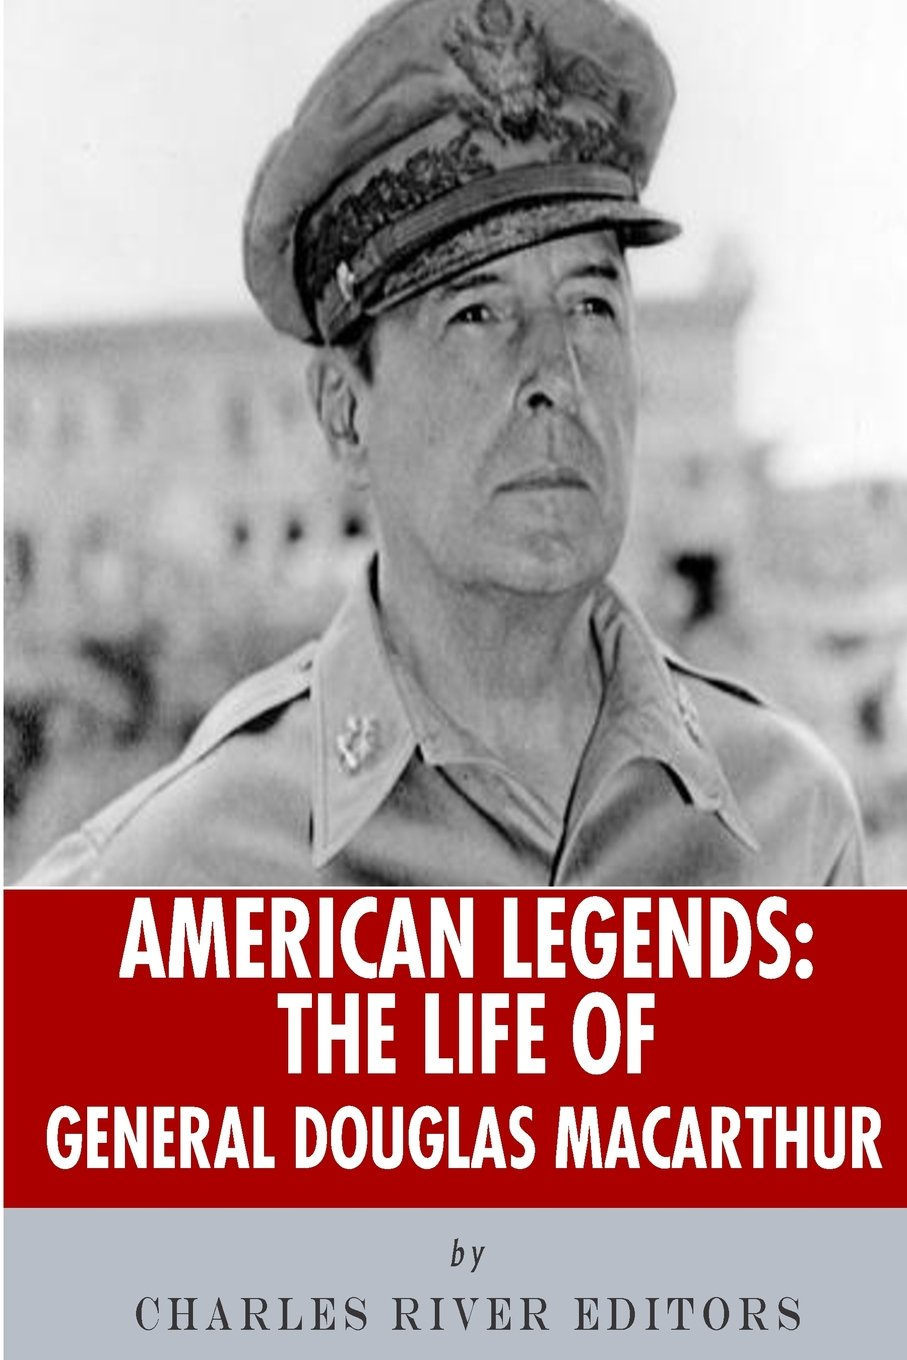 American Legends: The Life of General Douglas MacArthur